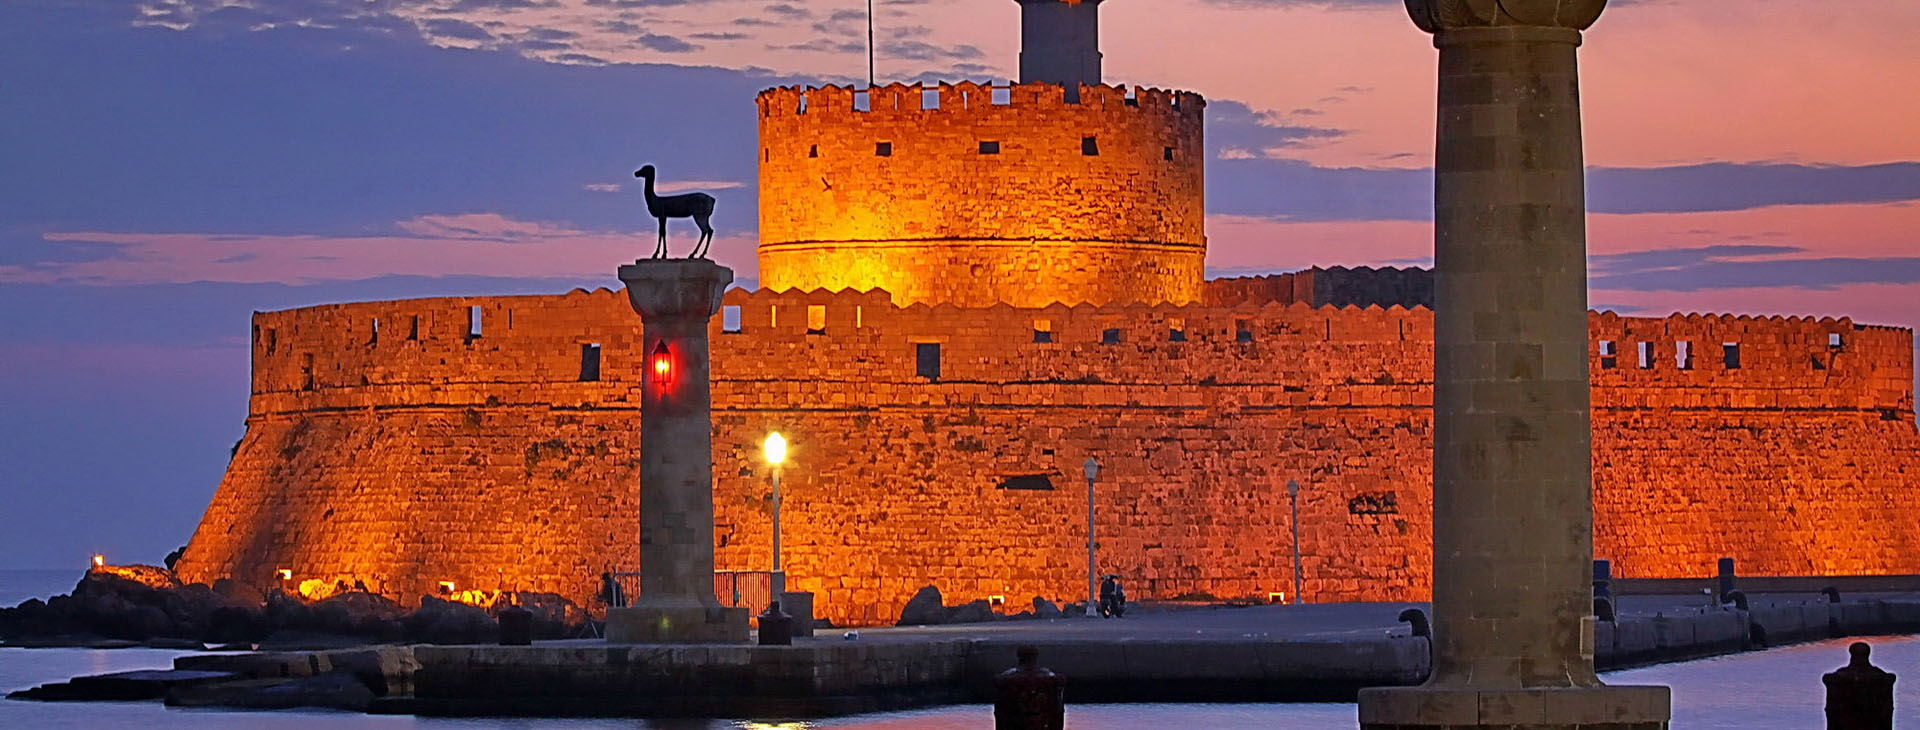 The harbour of Rhodes island